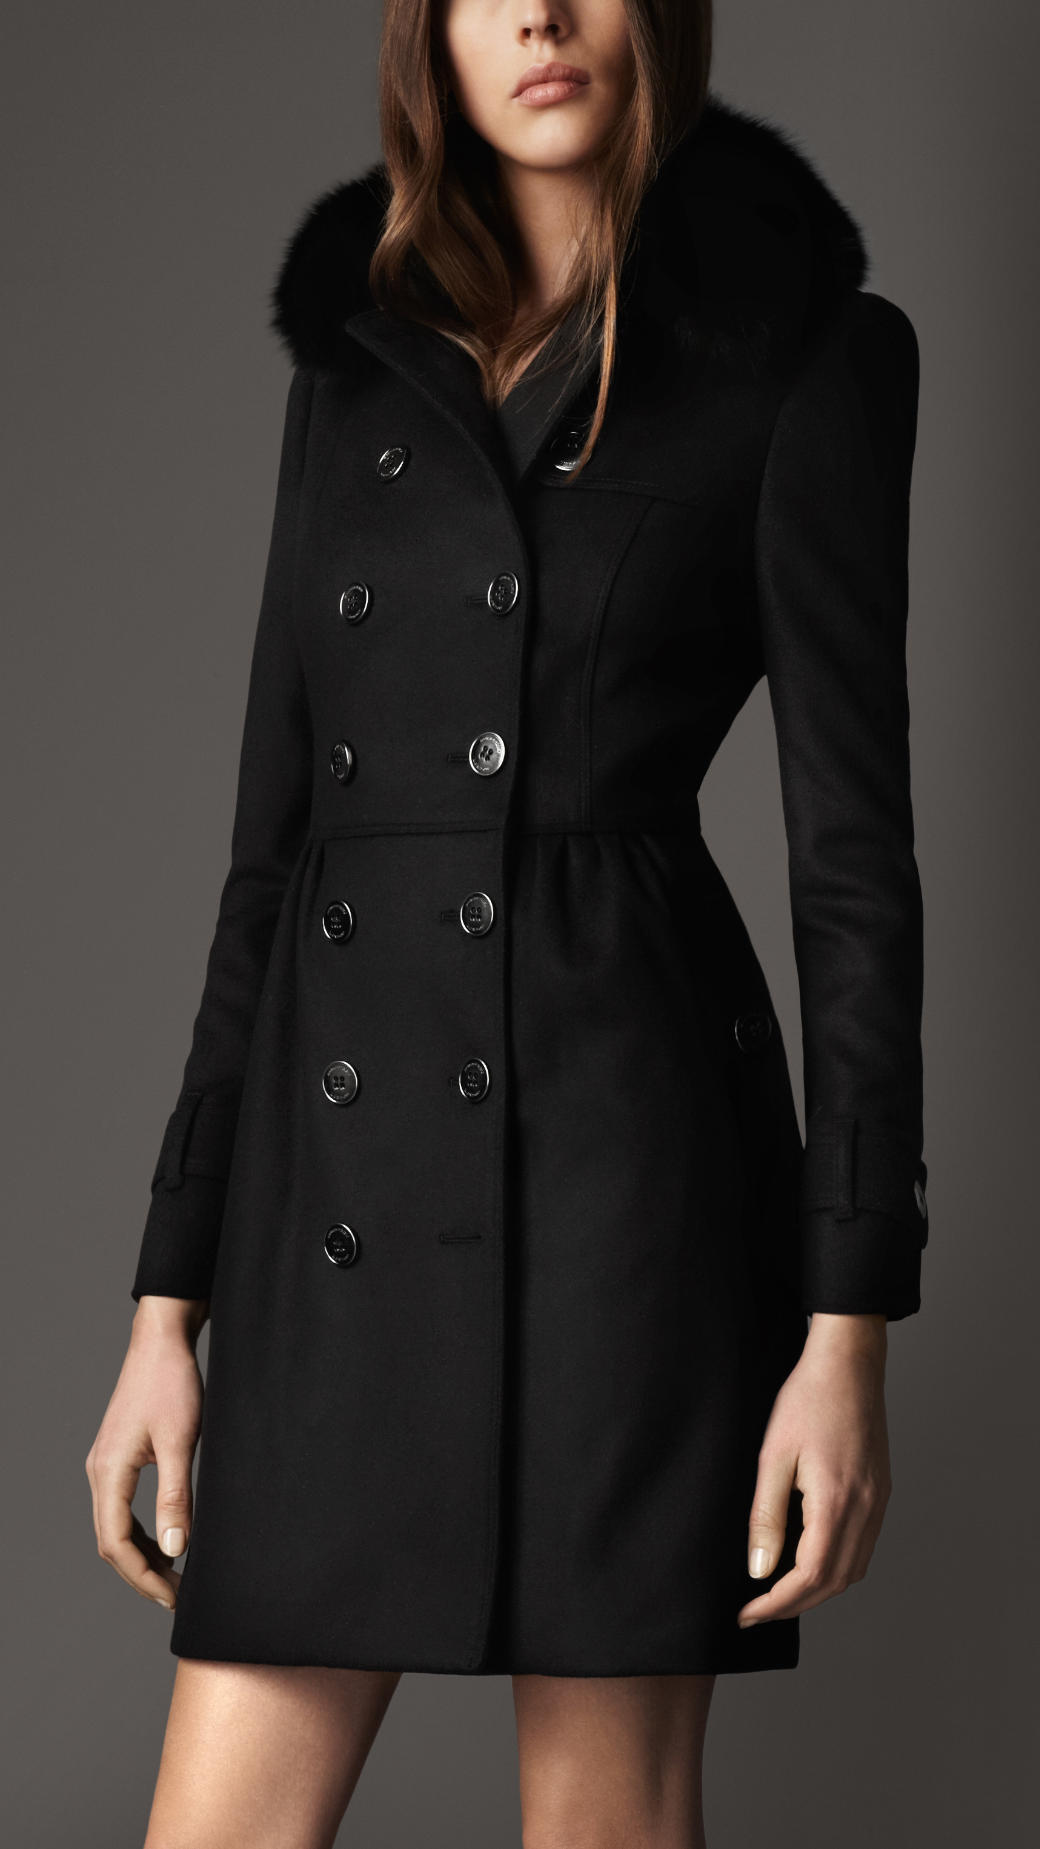 Burberry Long Fur Collar Trench Coat in Black | Lyst